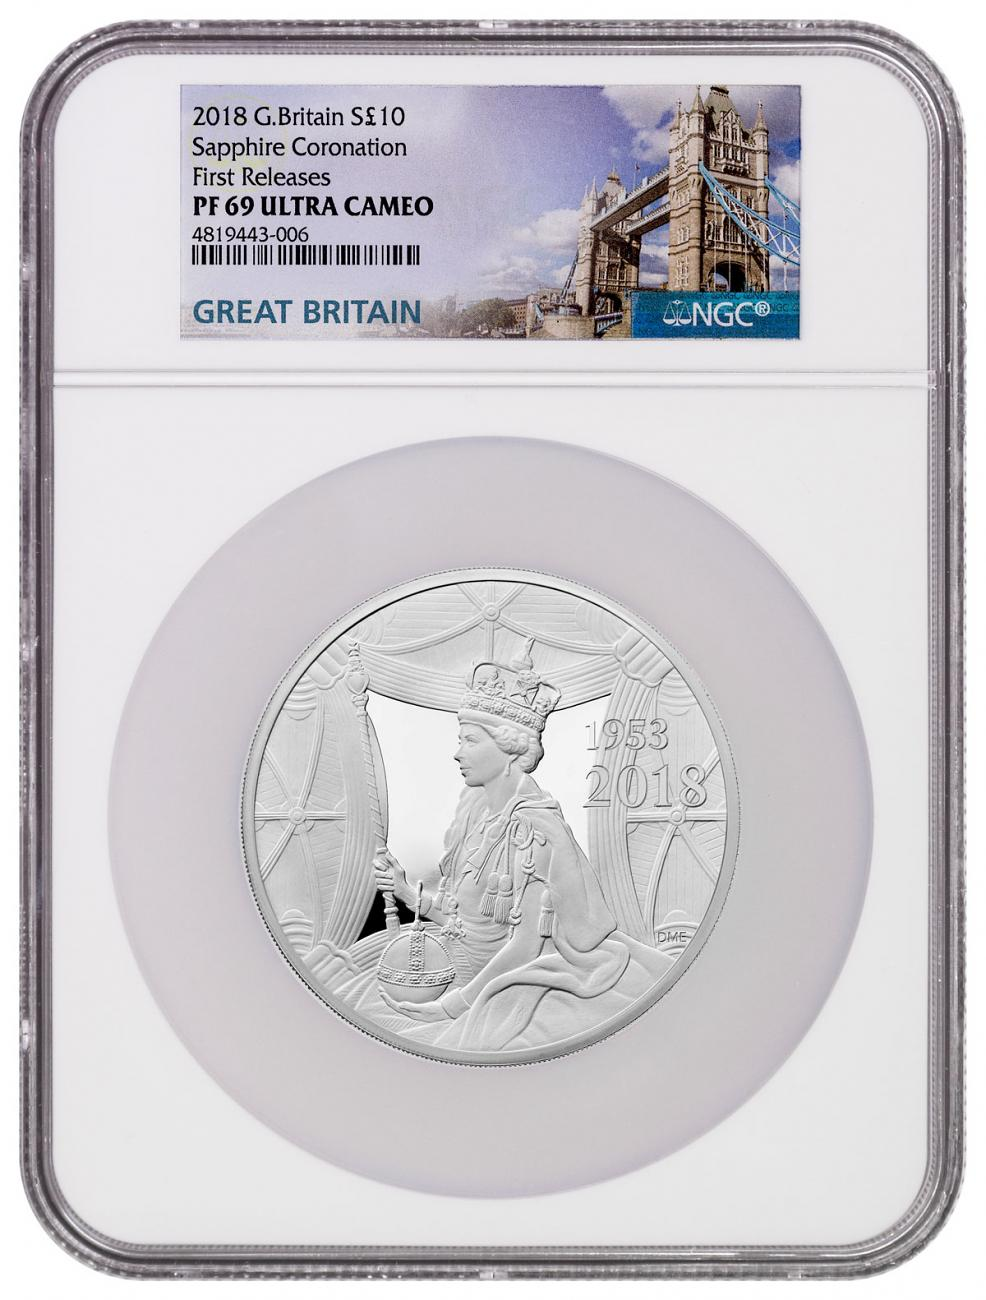 2018 Great Britain Sapphire Coronation 5 oz Silver Proof 10 Coin NGC PF69 UC FR Box with COA Tower Bridge Label